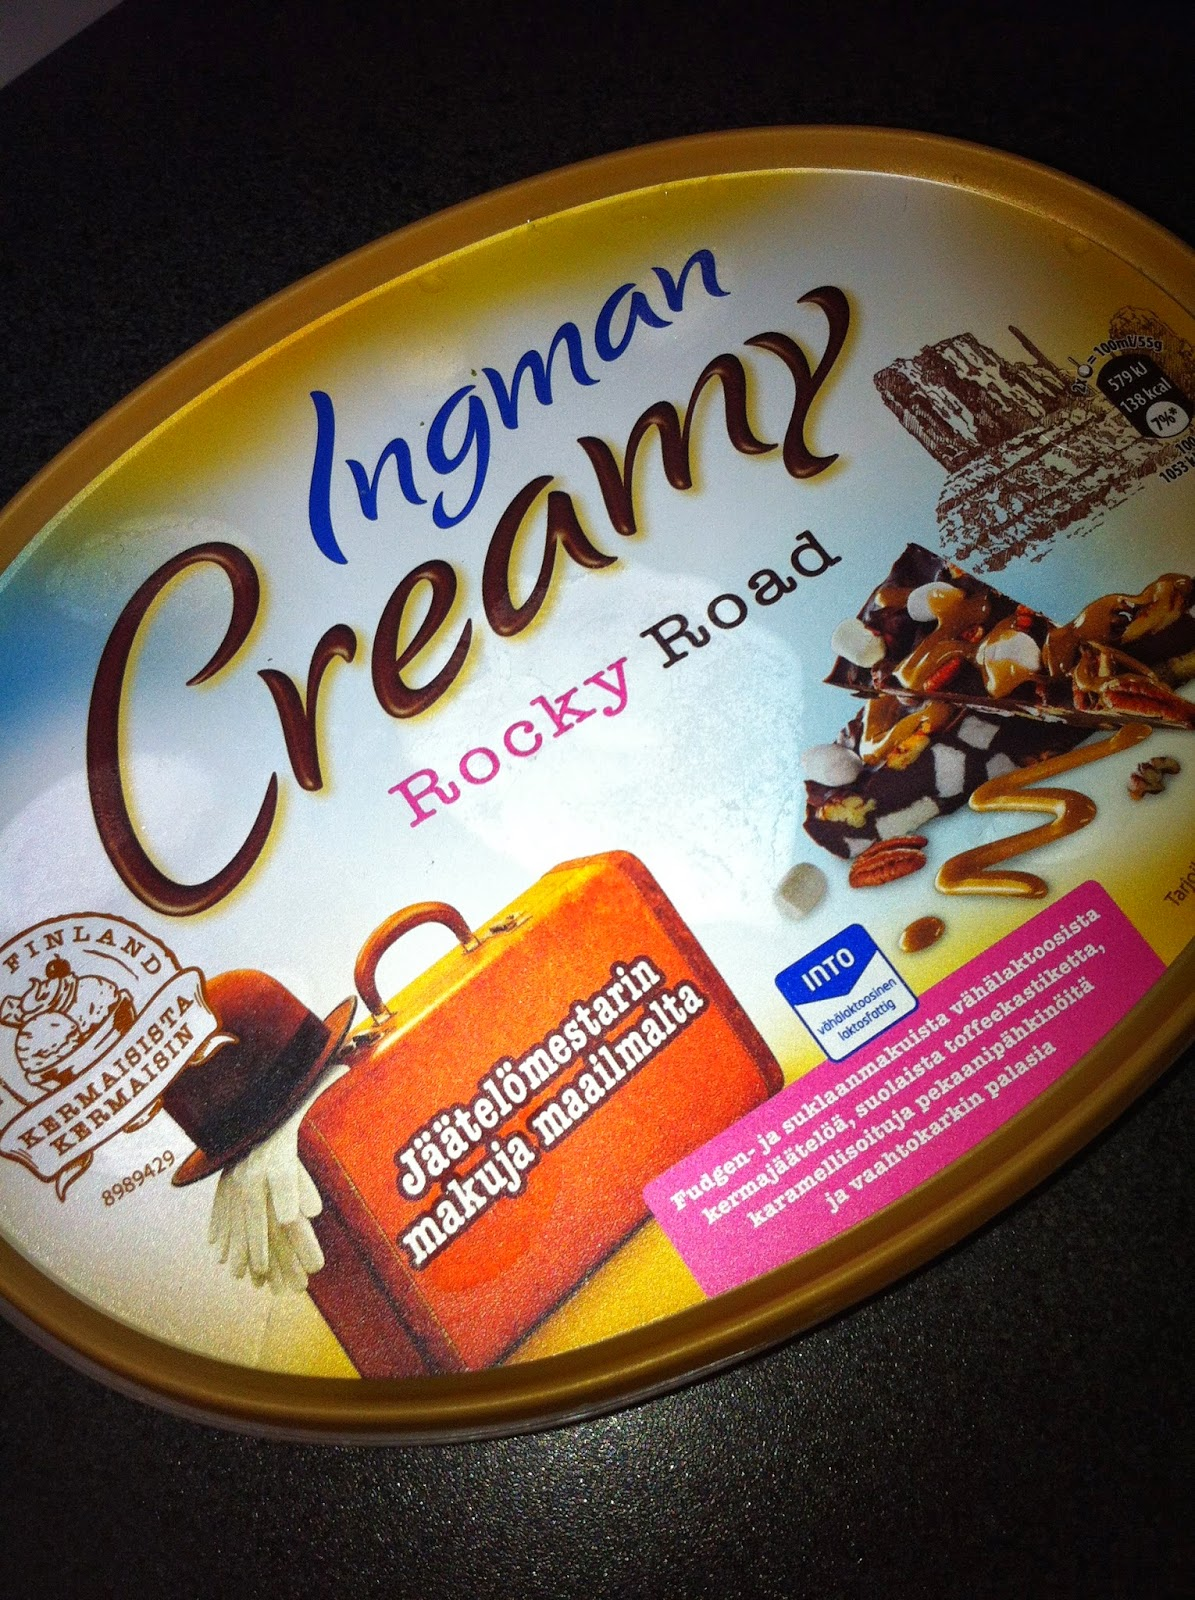 ingman, ingmancreamy, rockyroad, rockyroadicecream, icecream